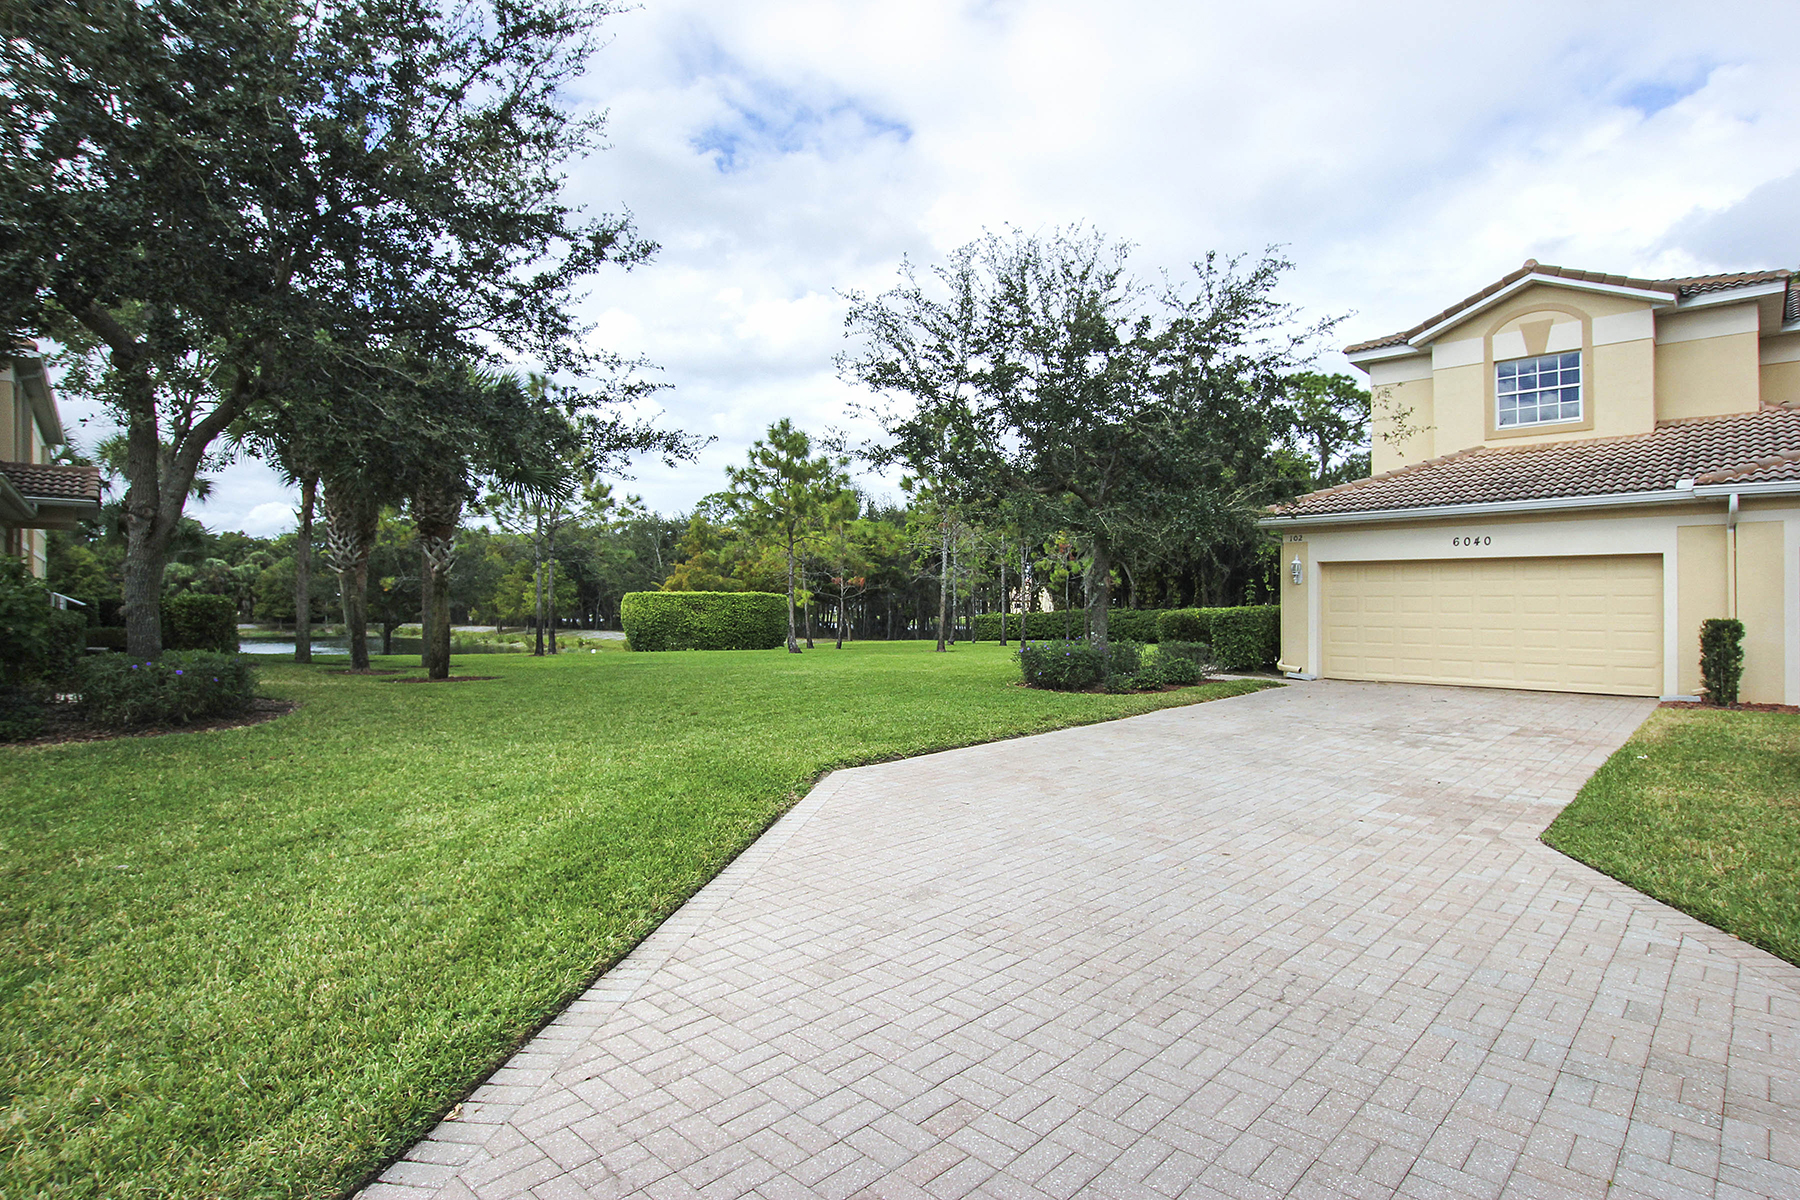 Condominium for Sale at JONATHANS BAY 6040 Jonathans Bay Cir 102 Fort Myers, Florida, 33908 United States